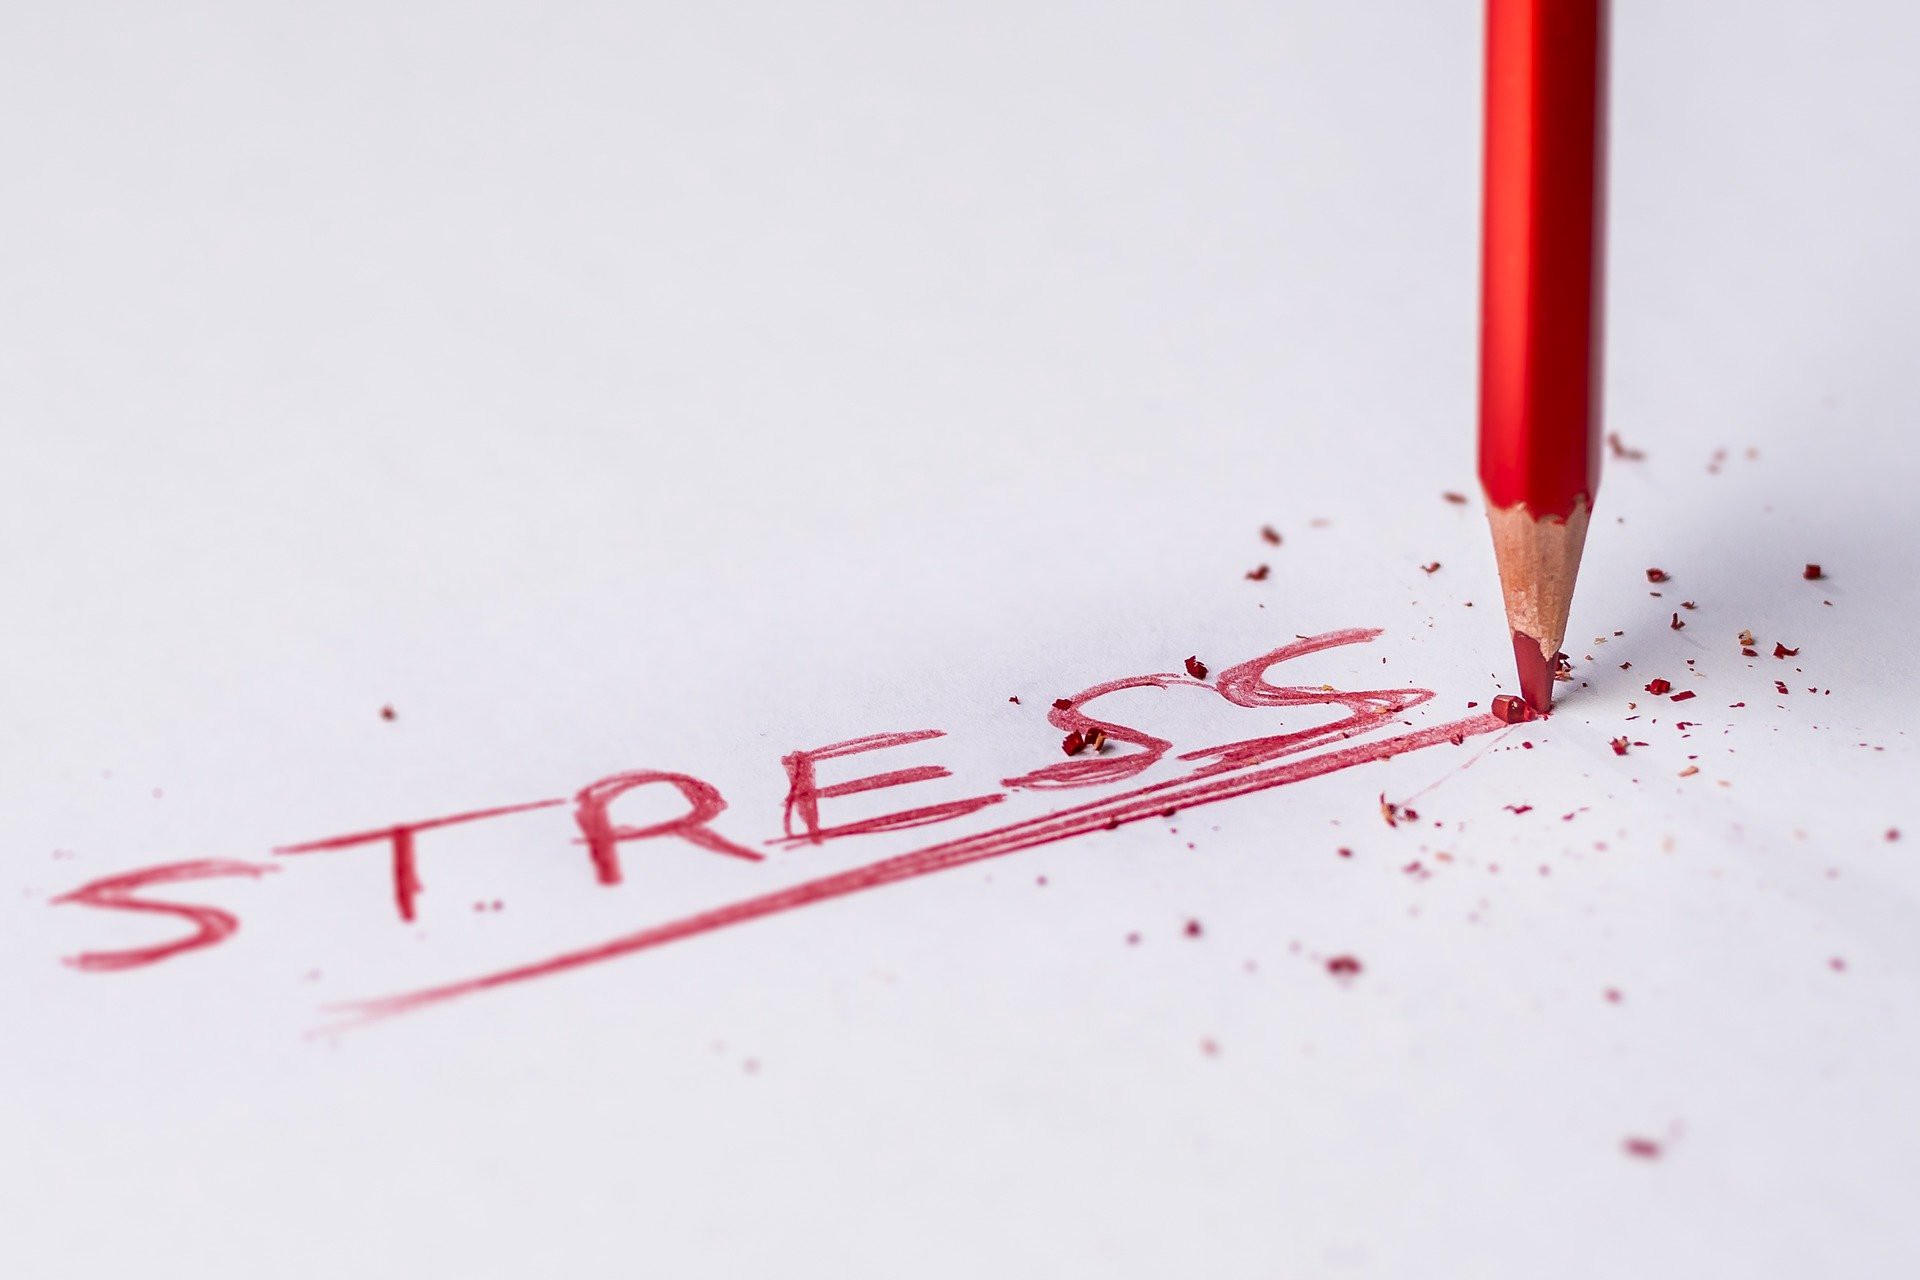 Saying yes too often leads to stress